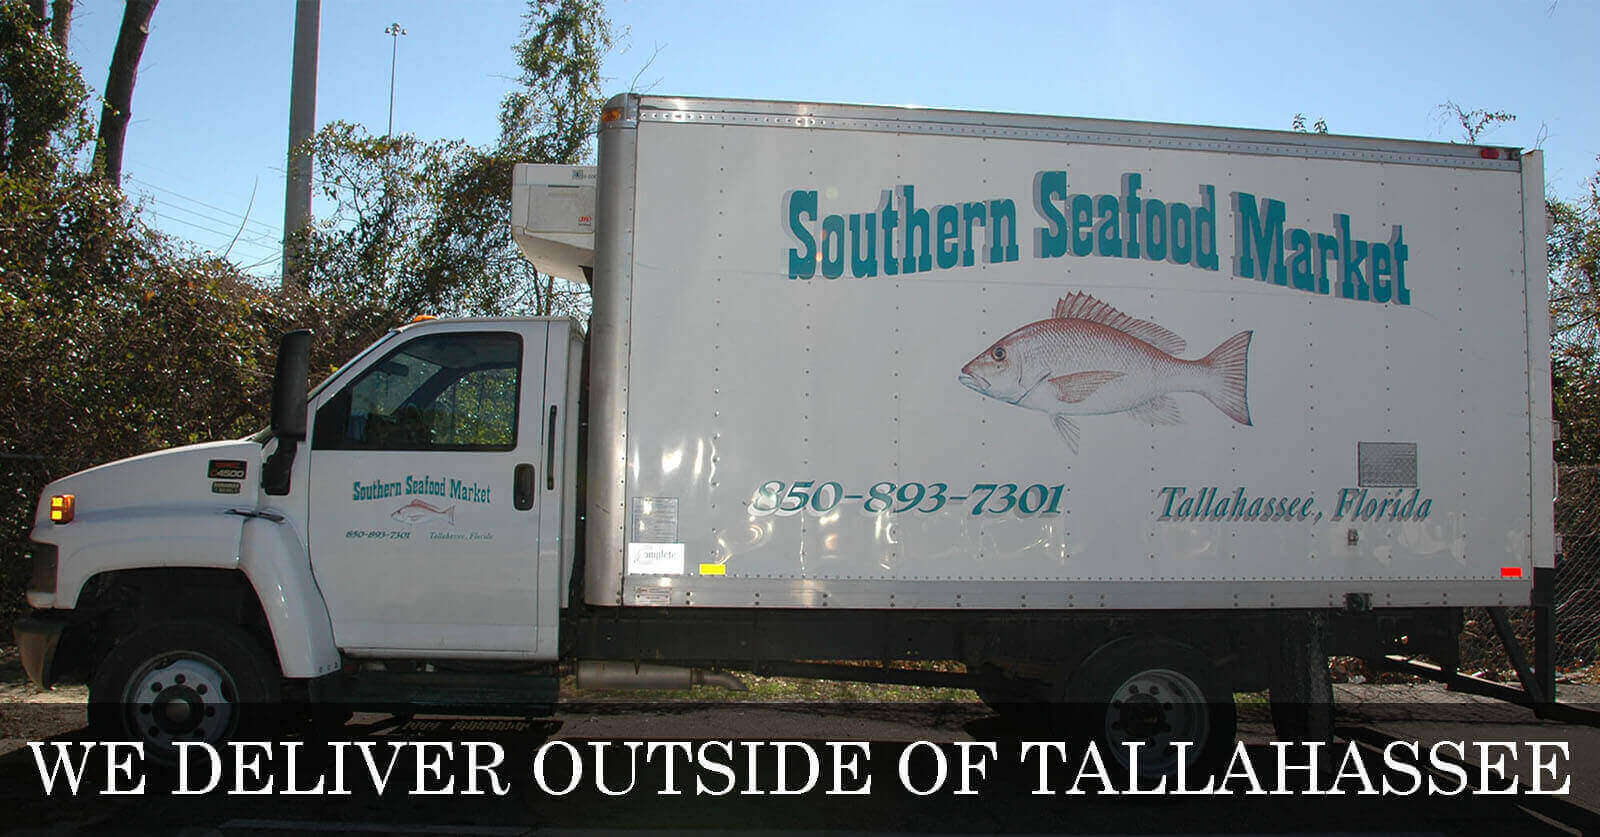 We Deliver - Southern Seafood Delivery Truck